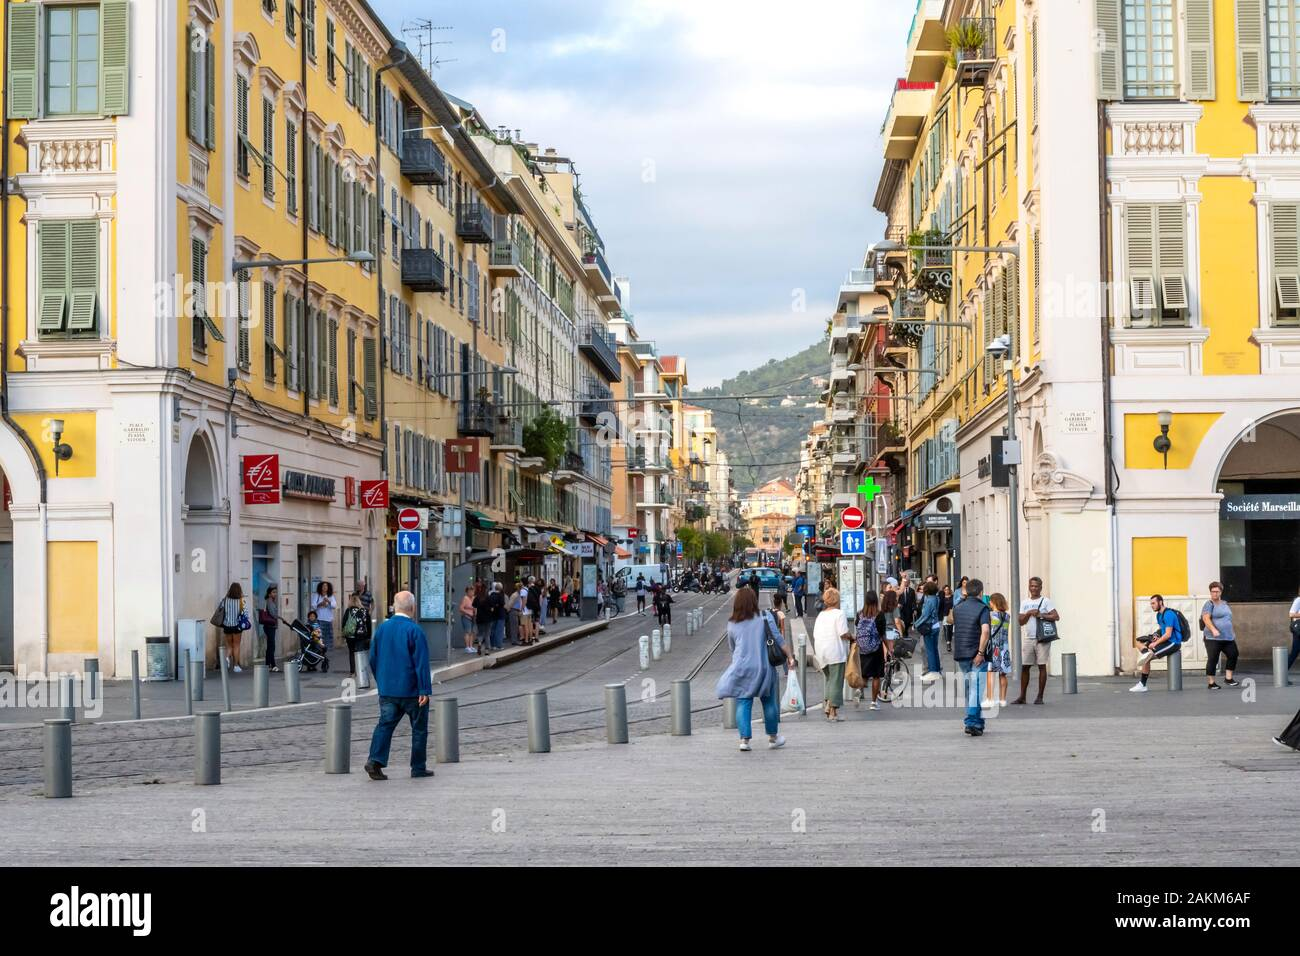 A busy late afternoon at Place Garibaldi in the Mediterranean city of Nice, France. Stock Photo